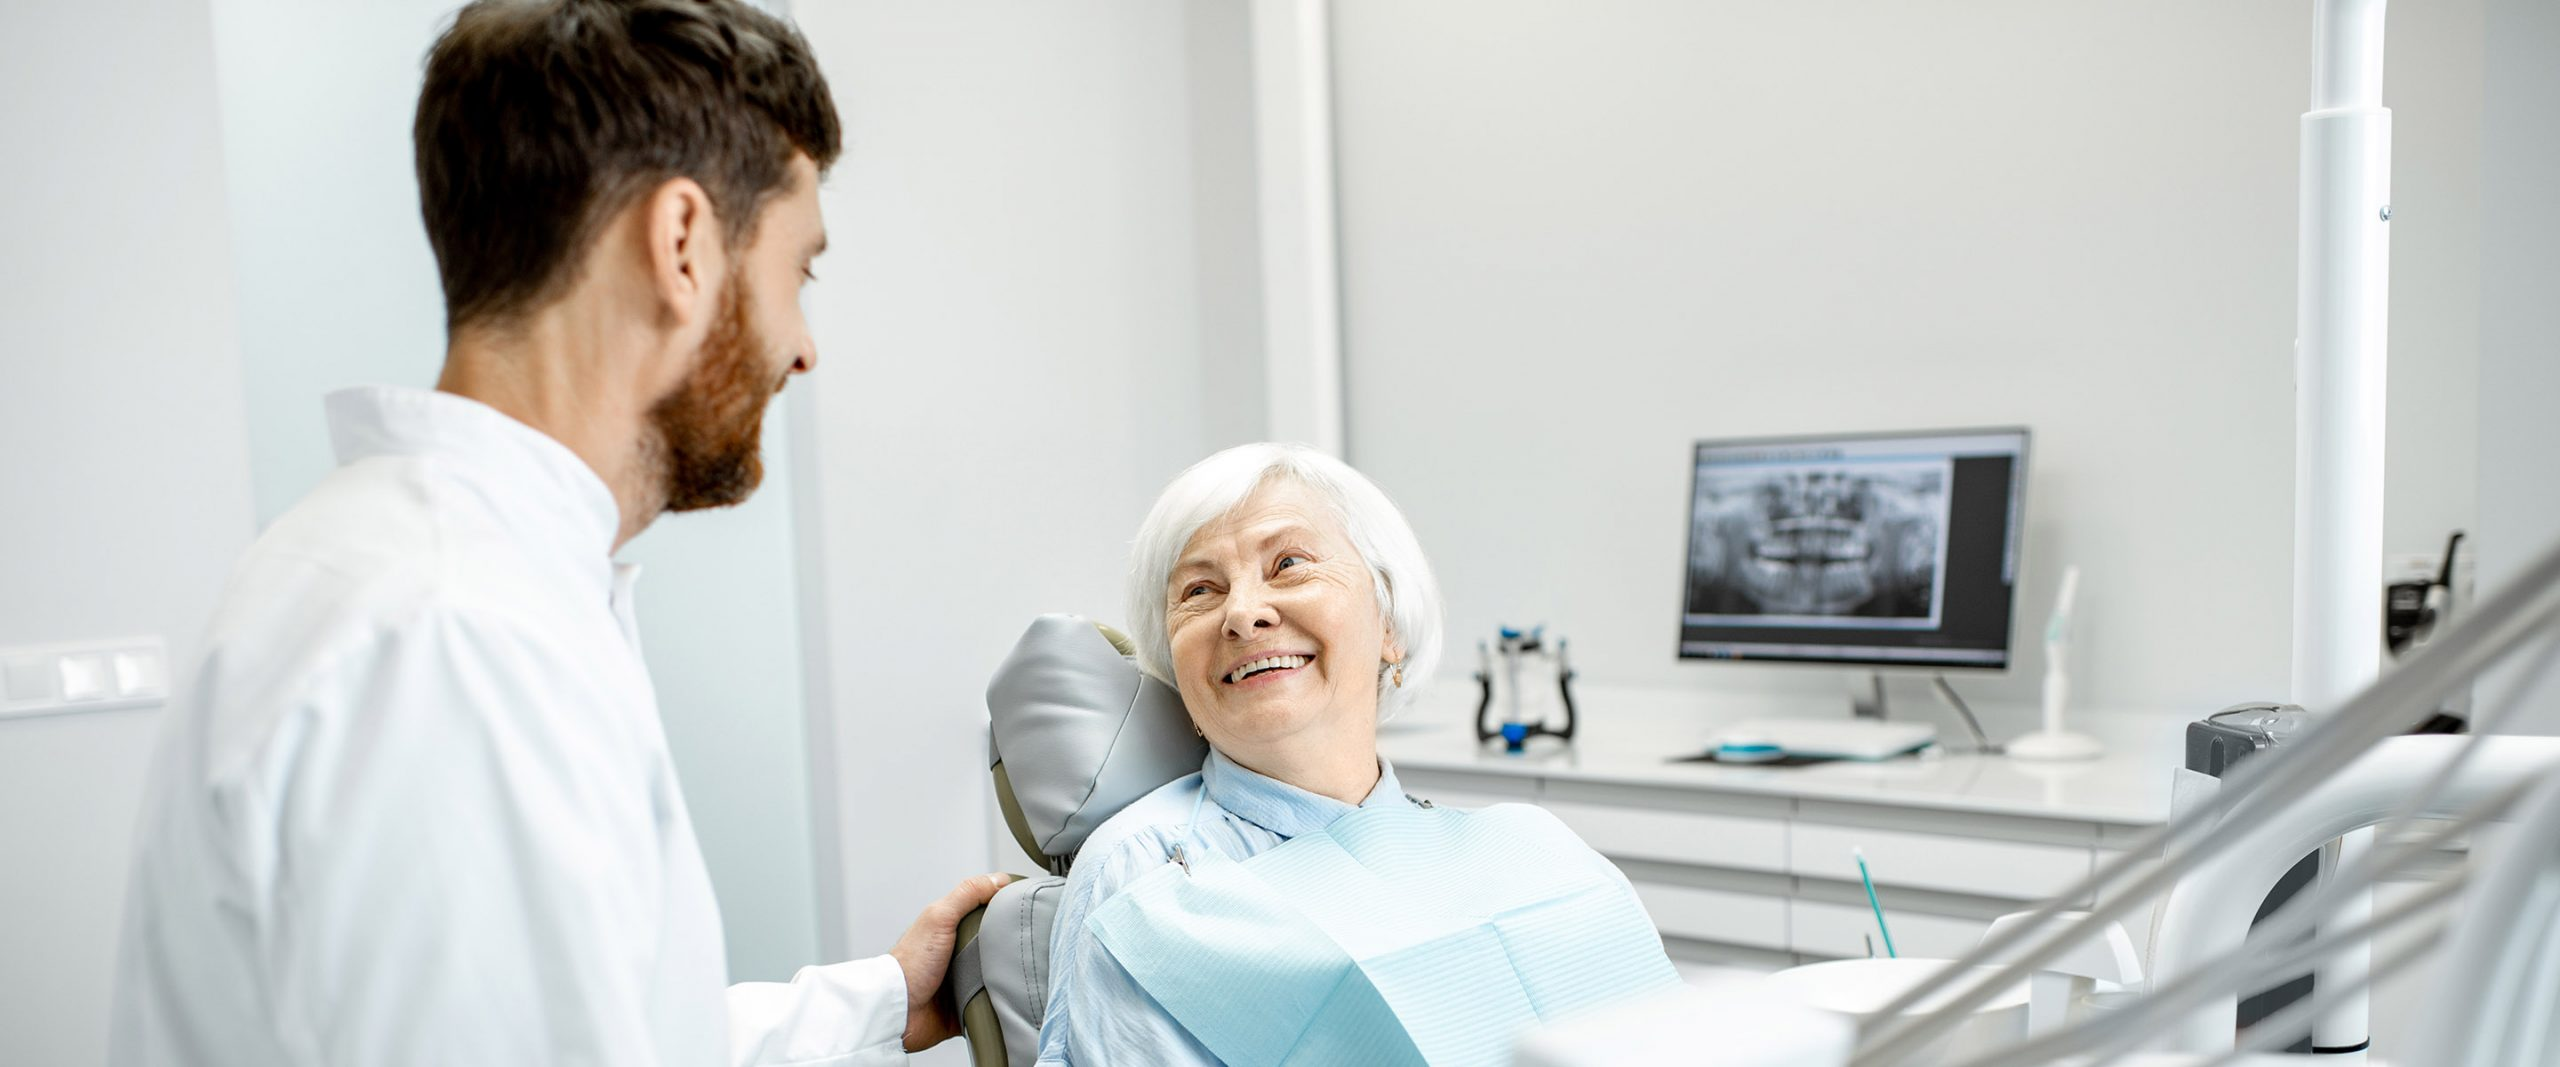 Treating edentulism: implant-retained overdenture vs implant-supported fixed dental prosthesis